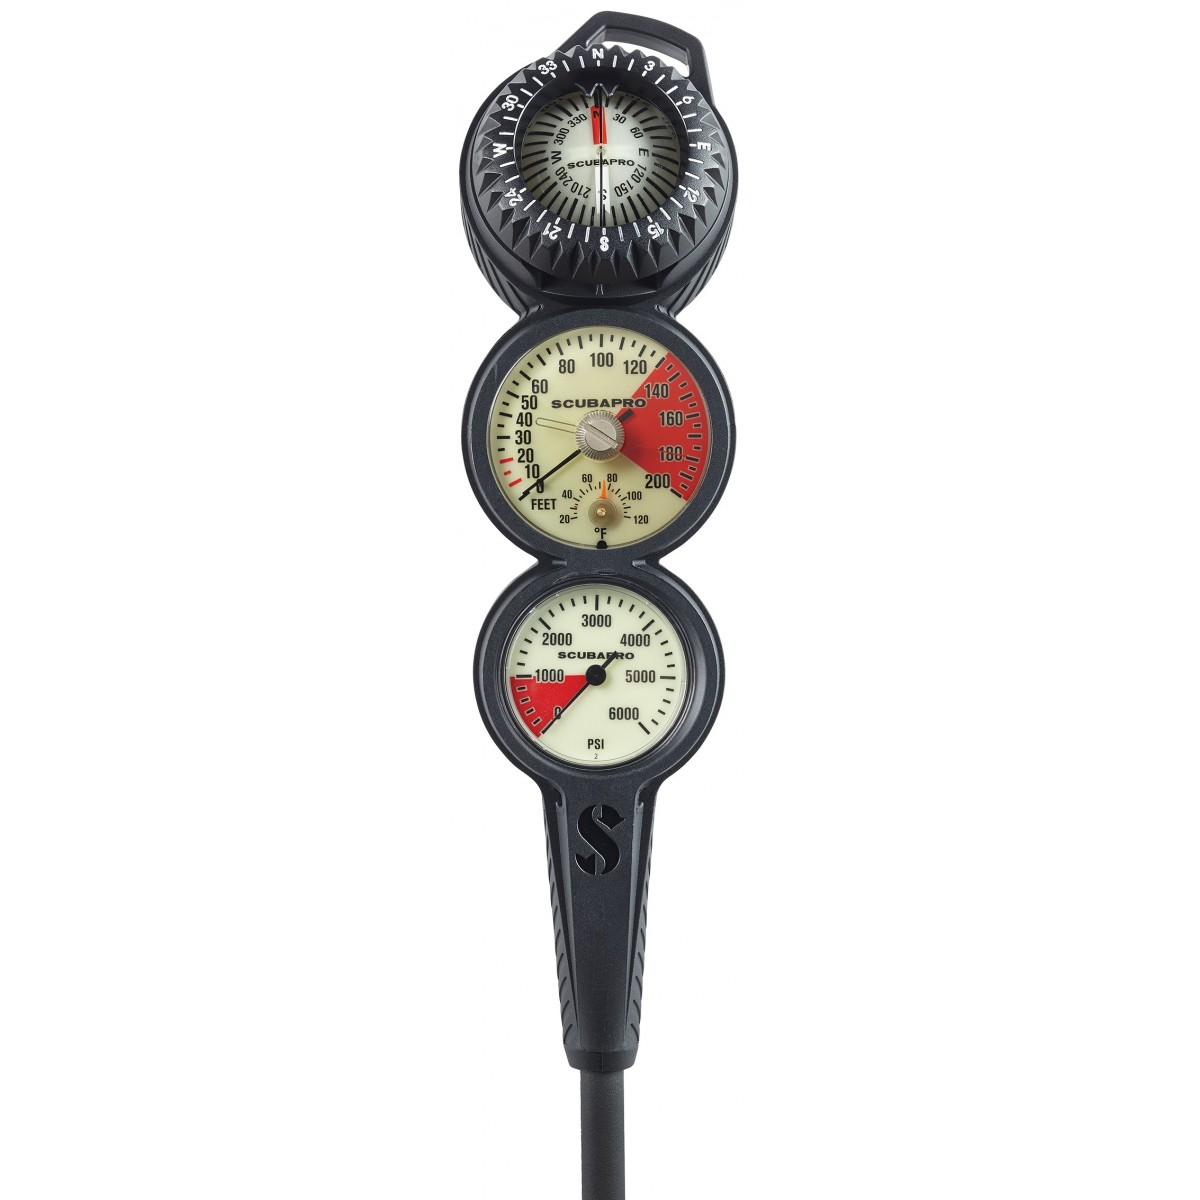 Scubapro 3 GAUGE IN-LINE CONSOLE With FS-2 COMPASS